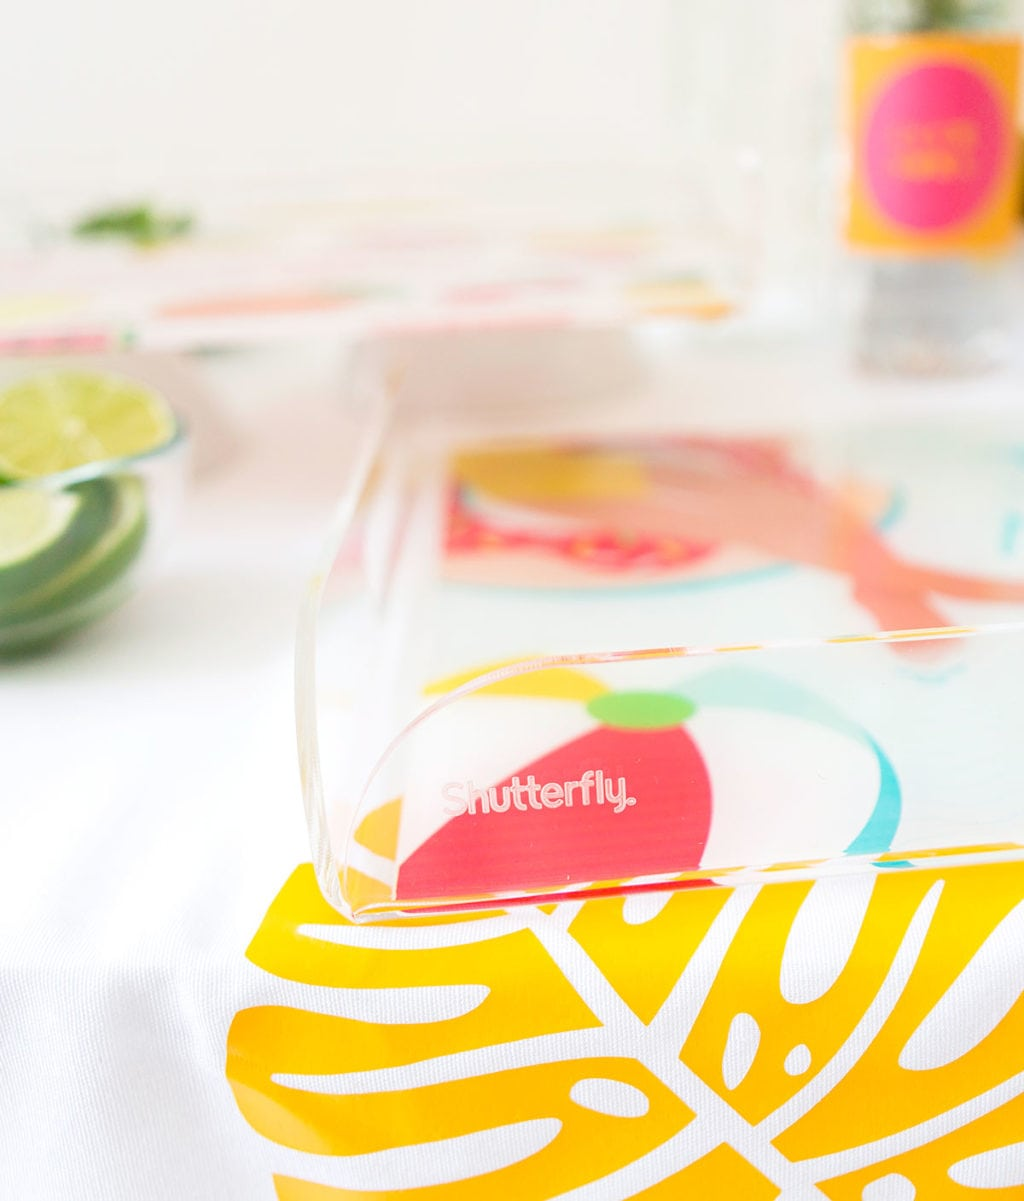 Customize your own DIY Shutterfly Acrylic Trays with free downloads that are perfect for summertime entertaining by the pool